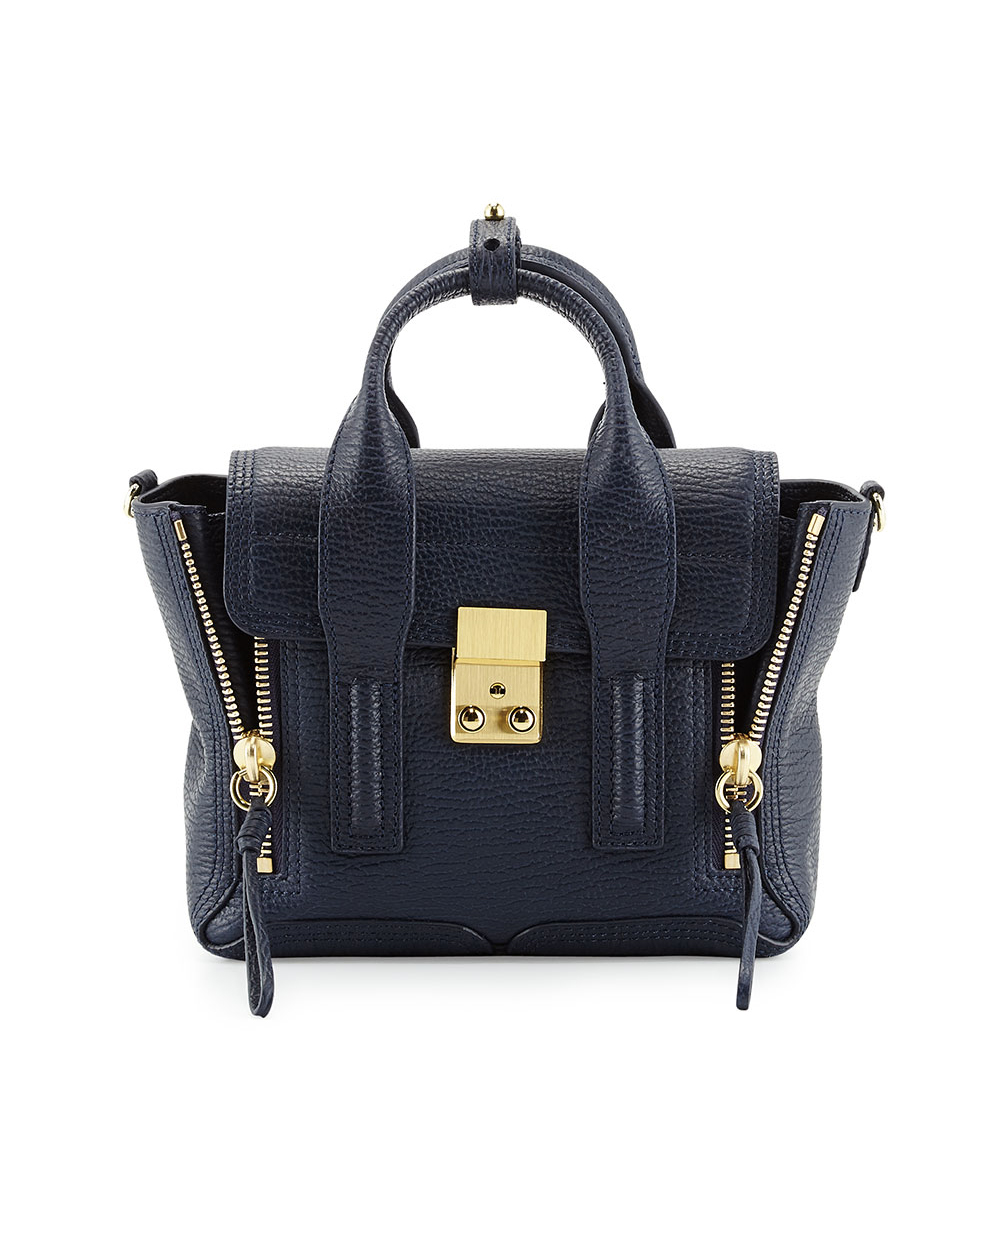 The-Bag-Freak-Philip-Lim-Mini-Pashli-Navy